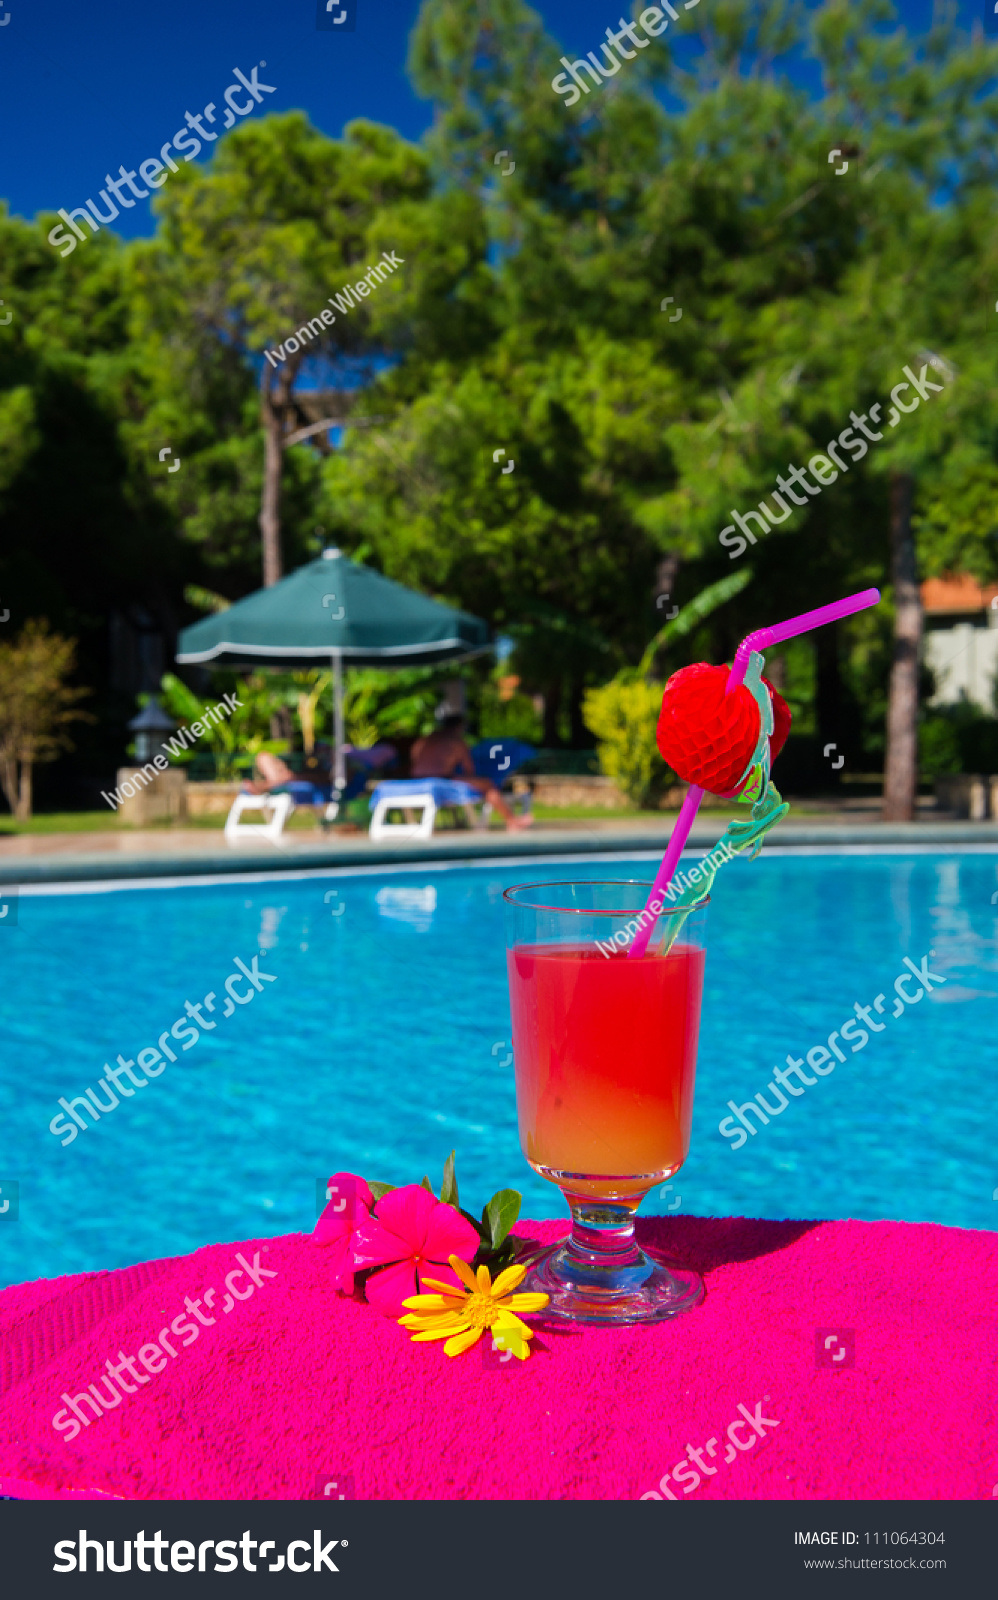 Glass Cocktail Drink At The Luxury Outdoor Swimming Pool Stock Photo 111064304 Shutterstock